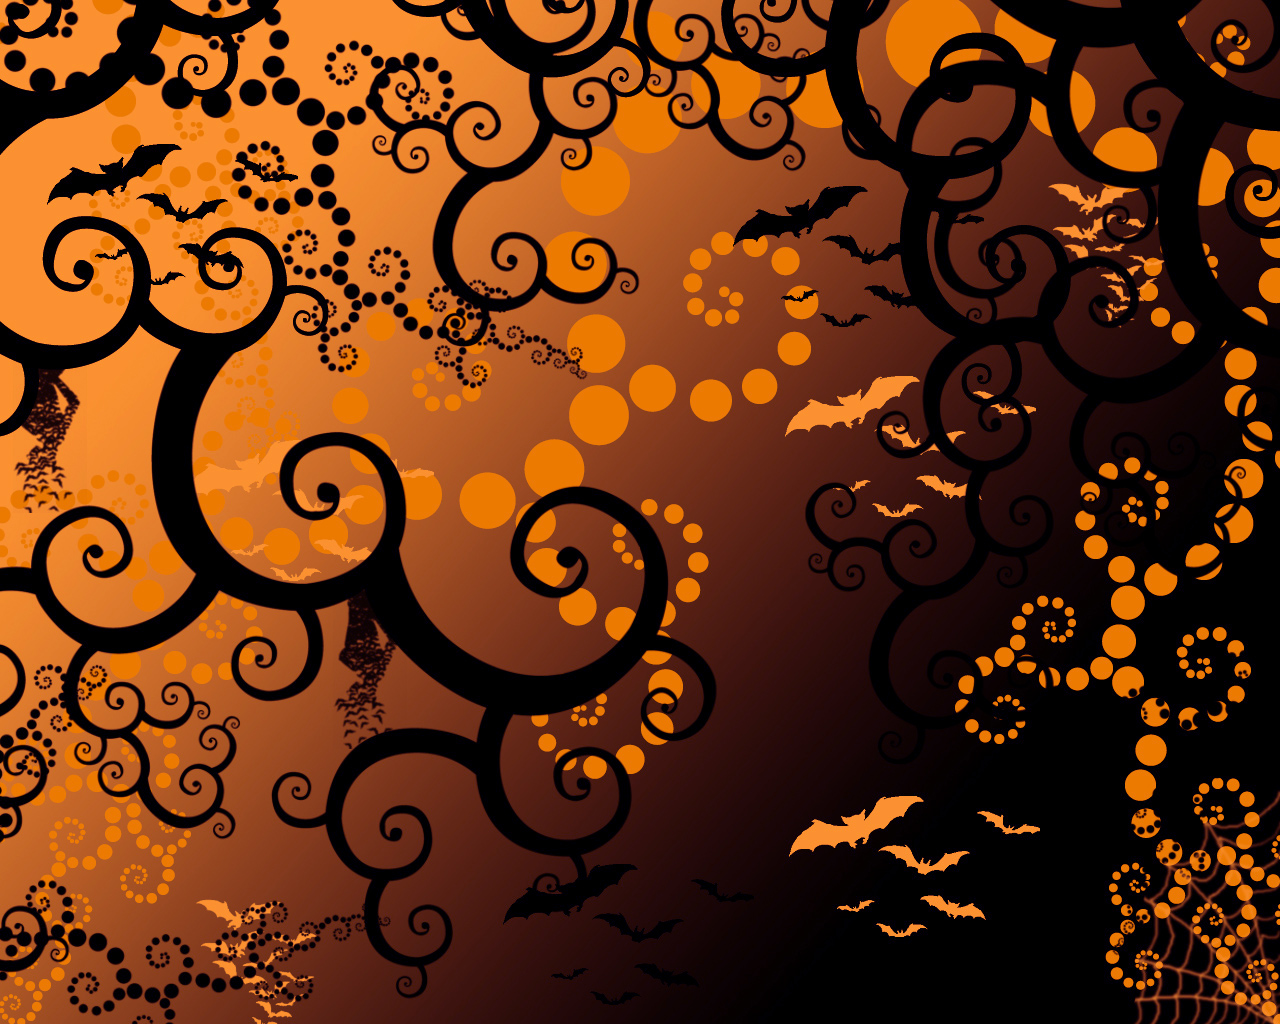 Amazing Funny Halloween Carvings Wallpaper Hd. At January , 2018. Fondos De  Escritorio De Halloween Pillateunlinux